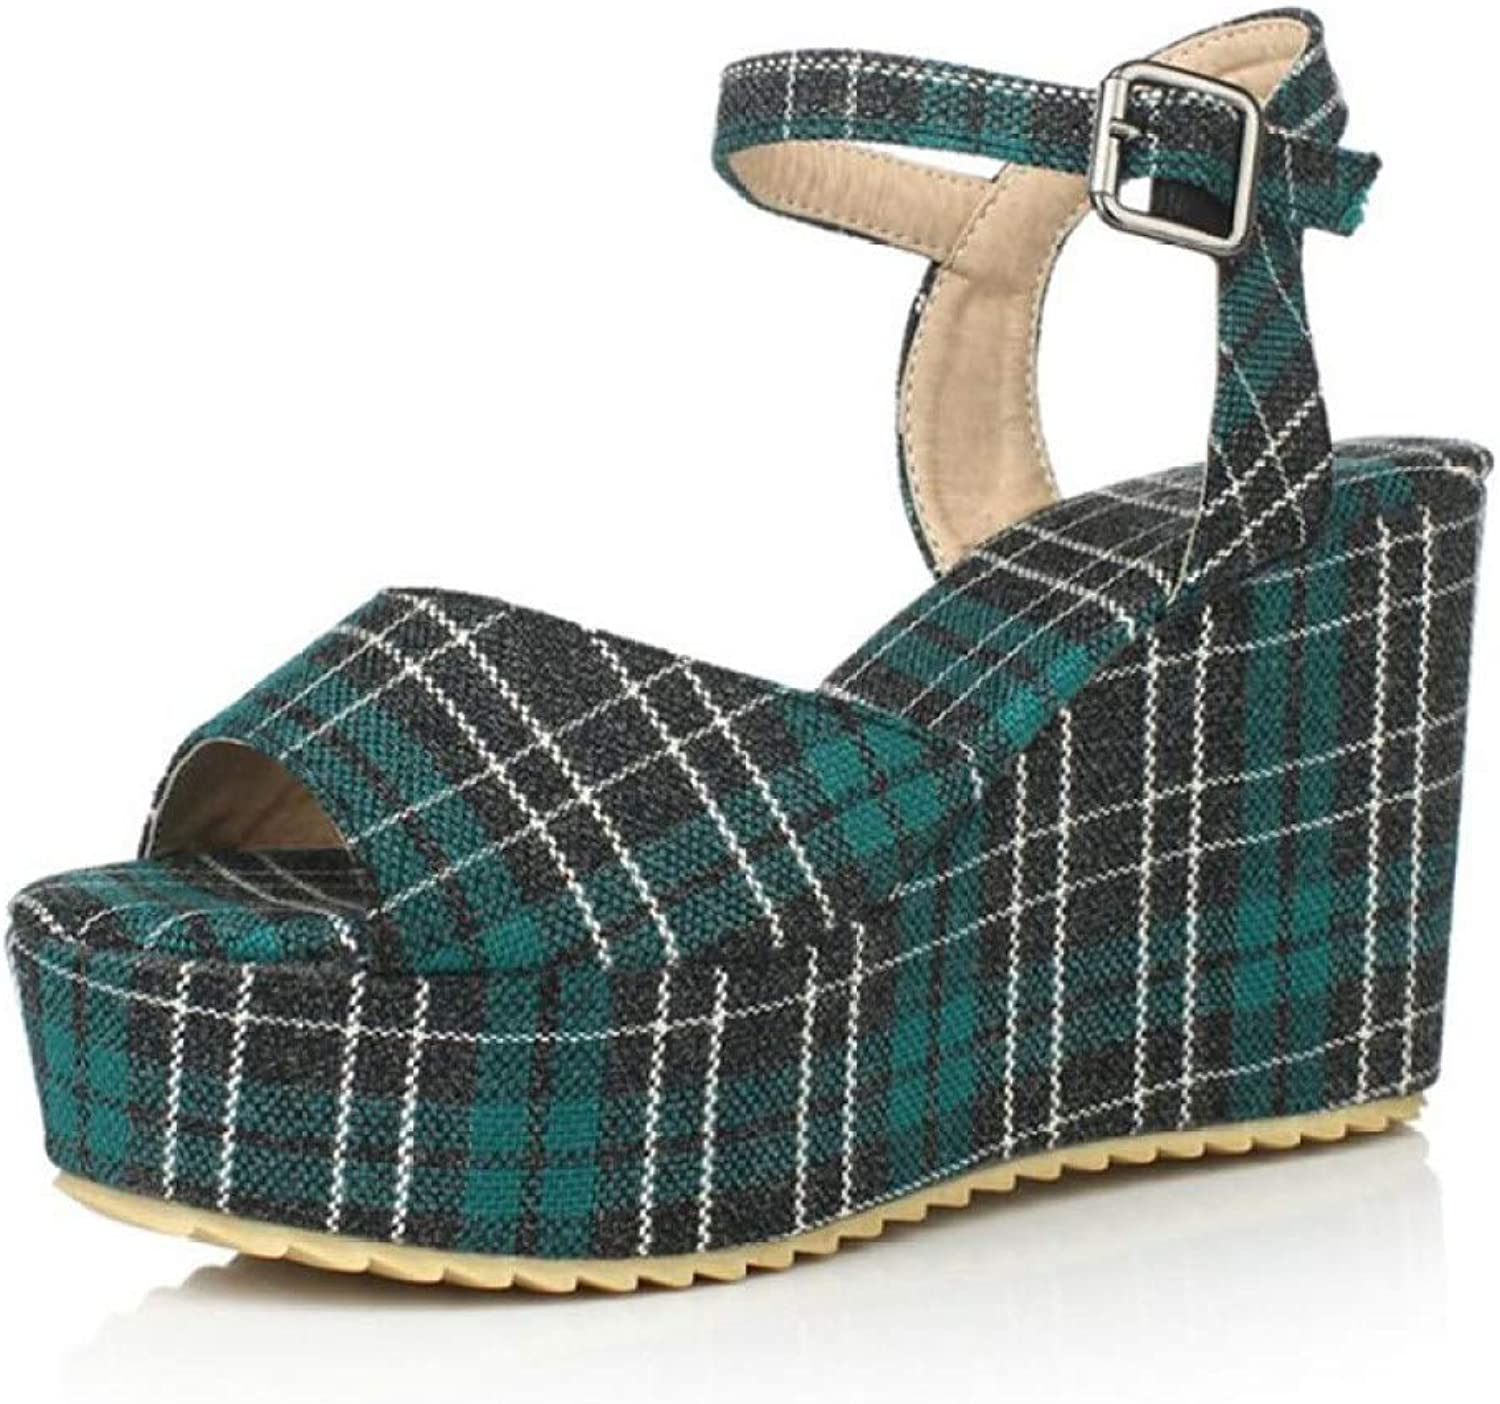 Woman's Plaid Print Wedge Platform High Heel Ankle Buckle Strap Sandals Open Toe Casual Party Footwear